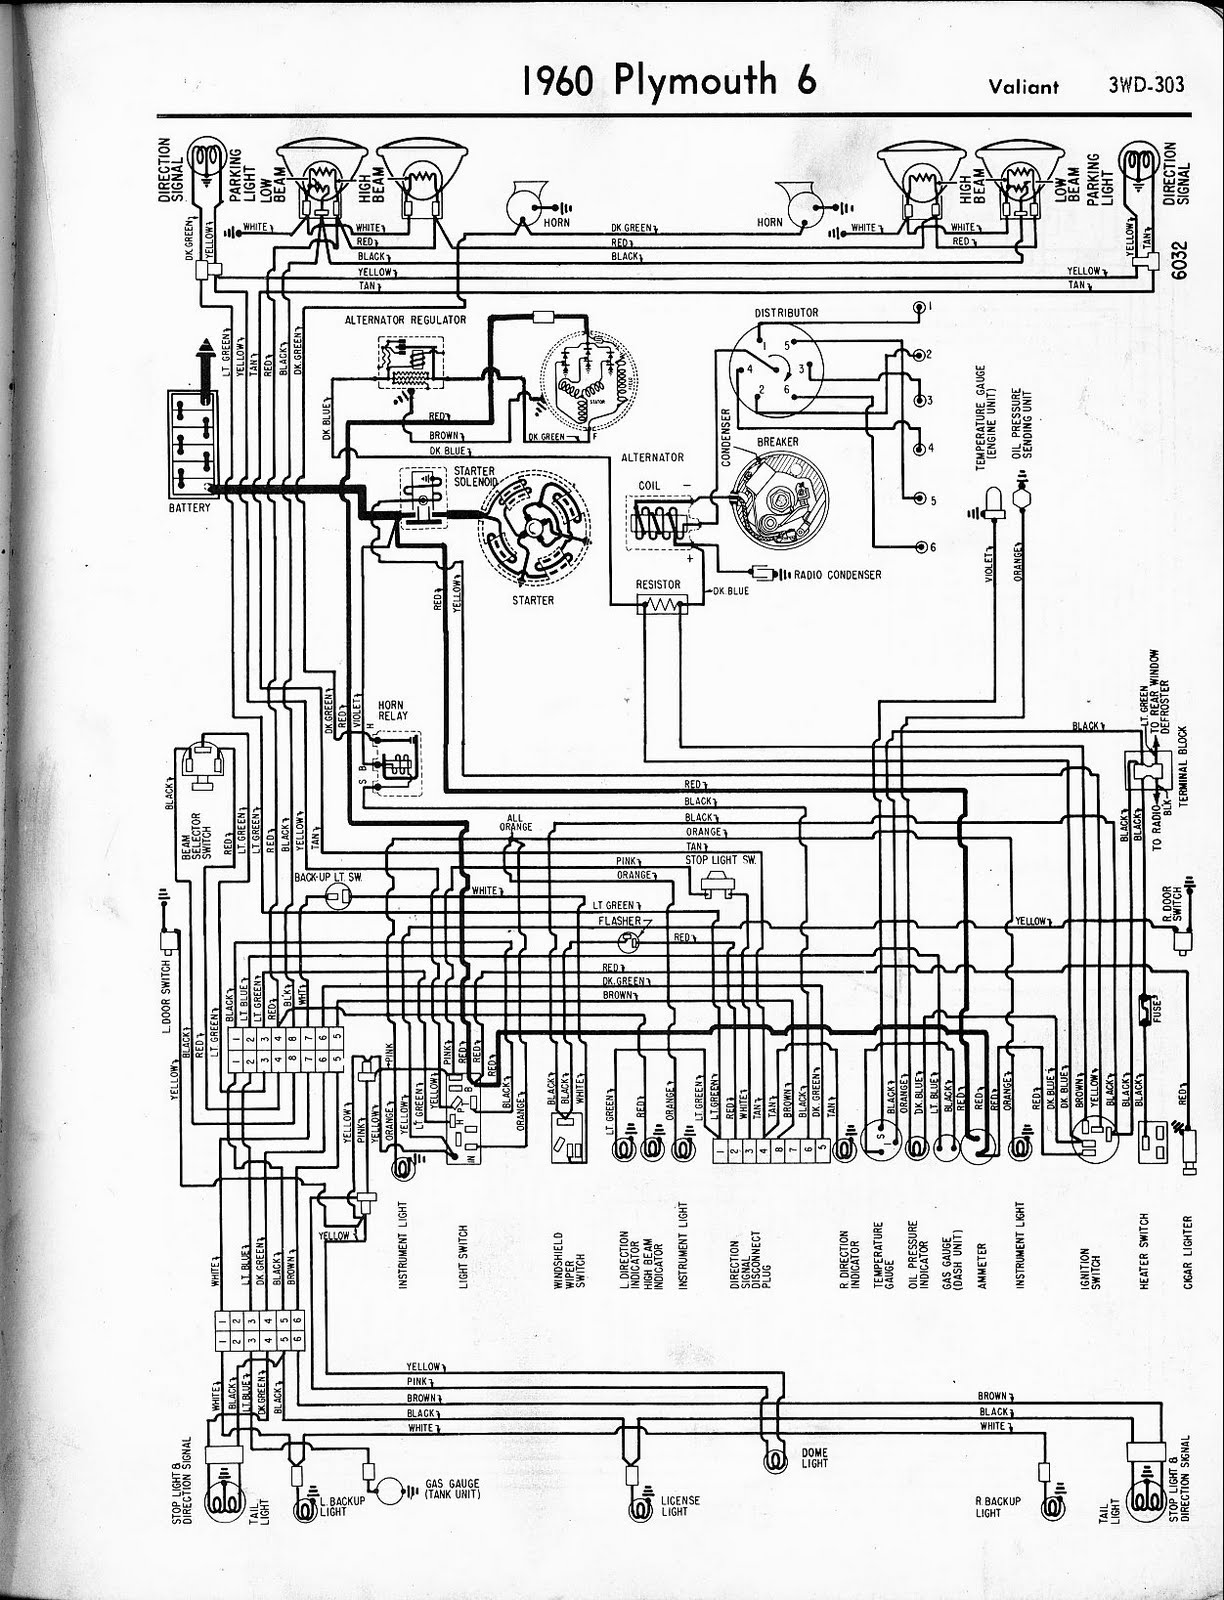 wire harness diagram for chevelle